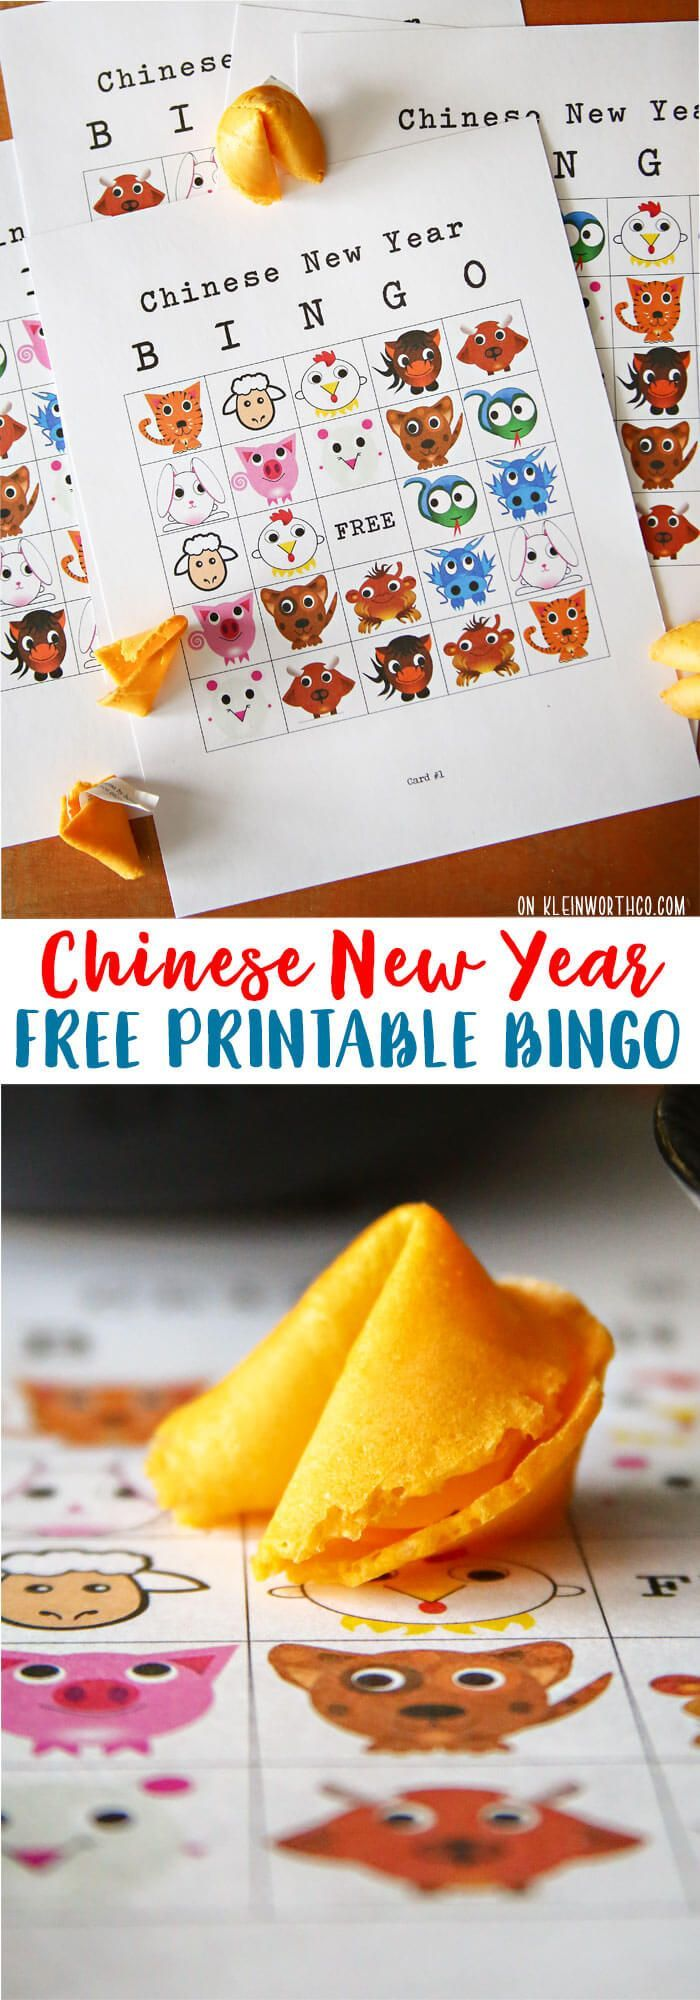 Create a family fun night & celebrate Chinese New Year with this FUN Chinese New Year Bingo Printable. Tasty food & cultural inspiration! AD